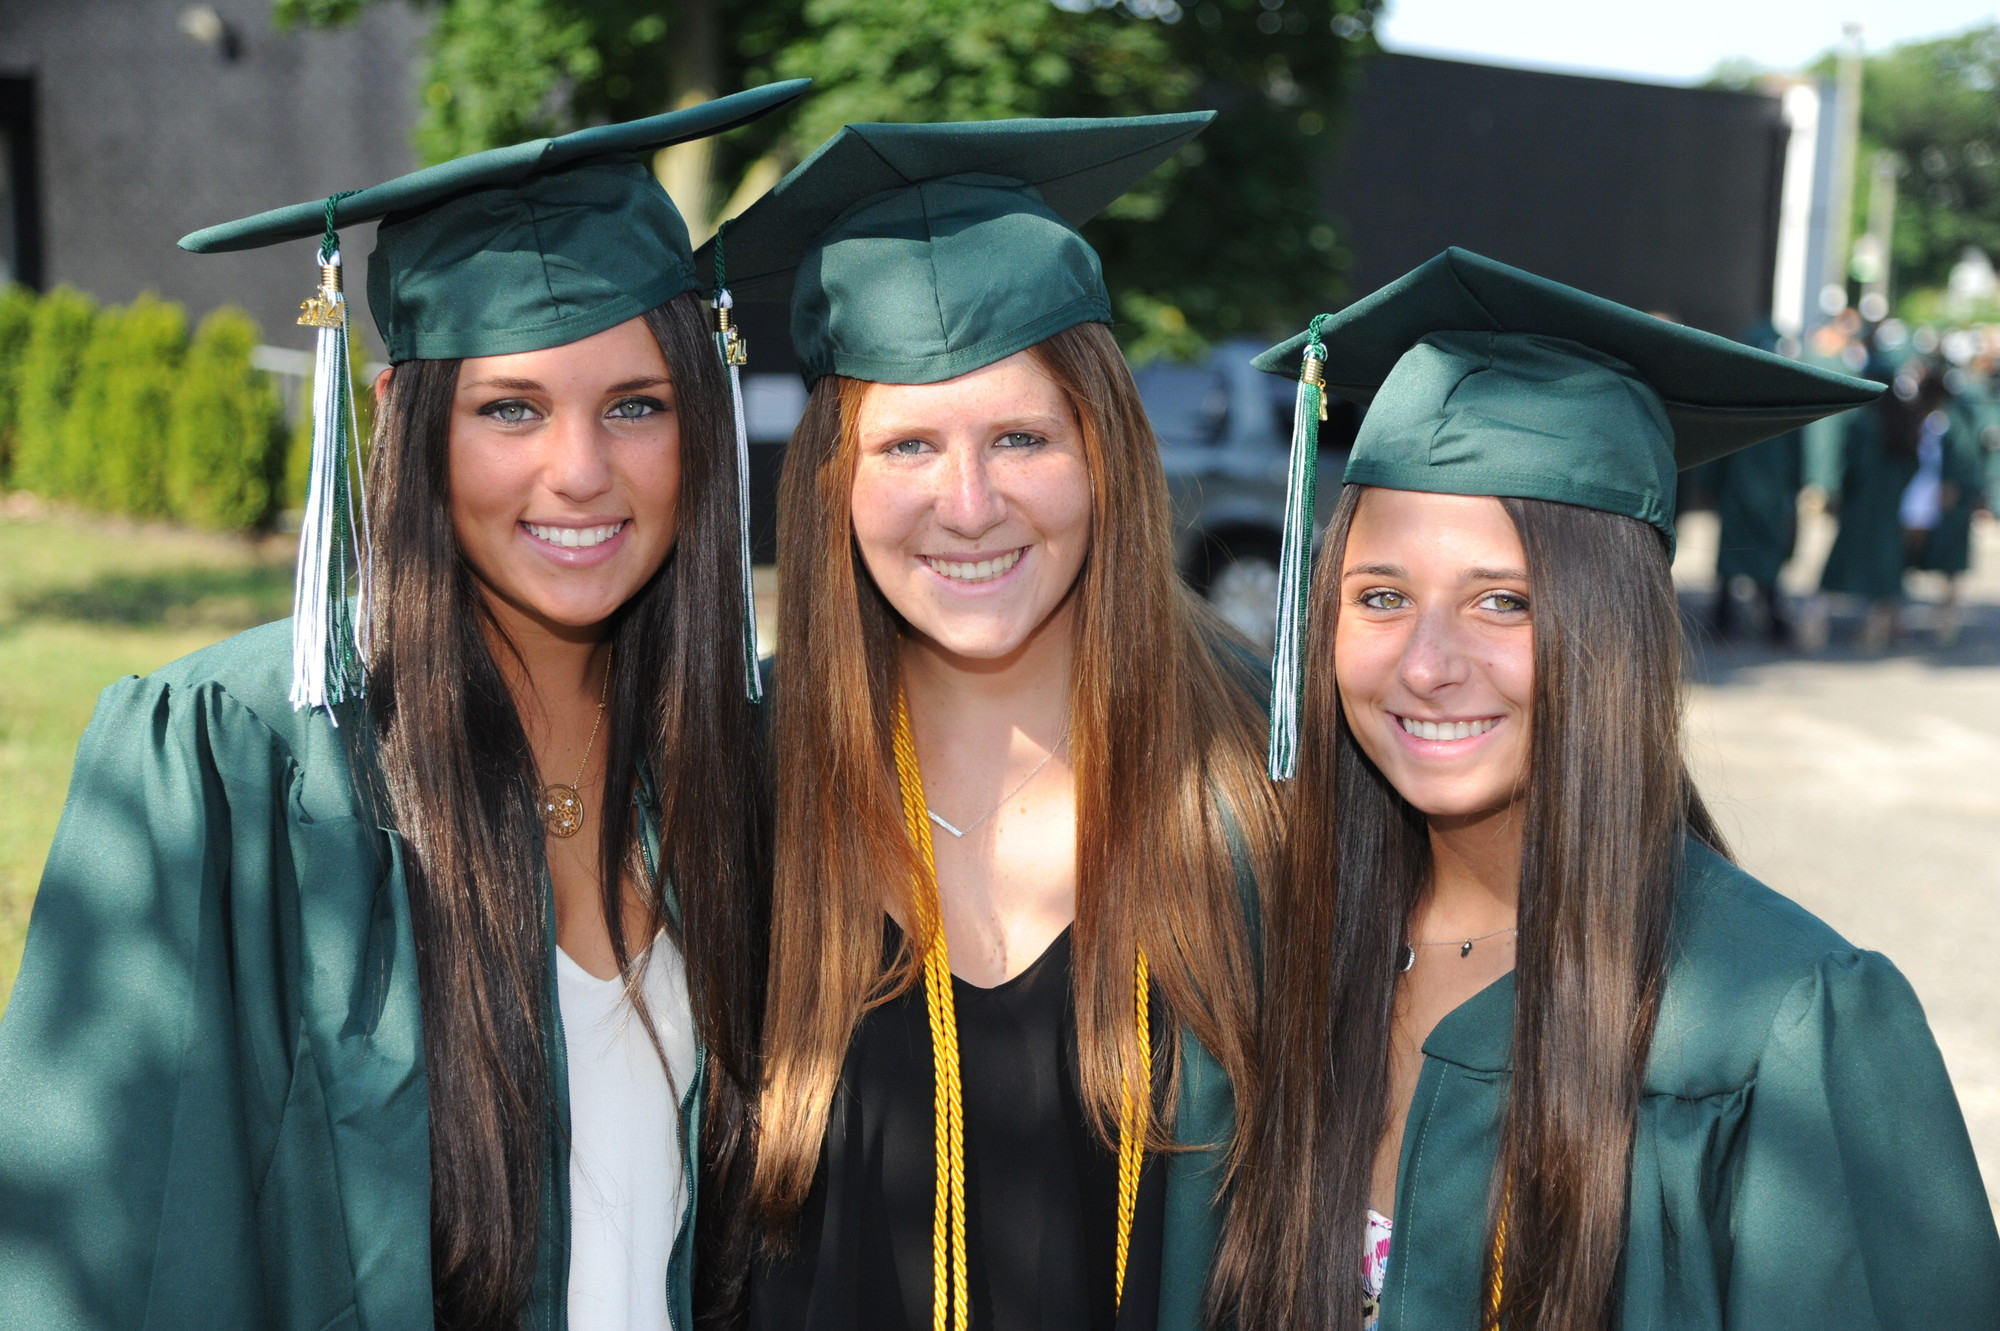 Kennedy High School seniors, from left, Casey King, Carly Klein and Hallie Katz were all smiles at graduation on Sunday.